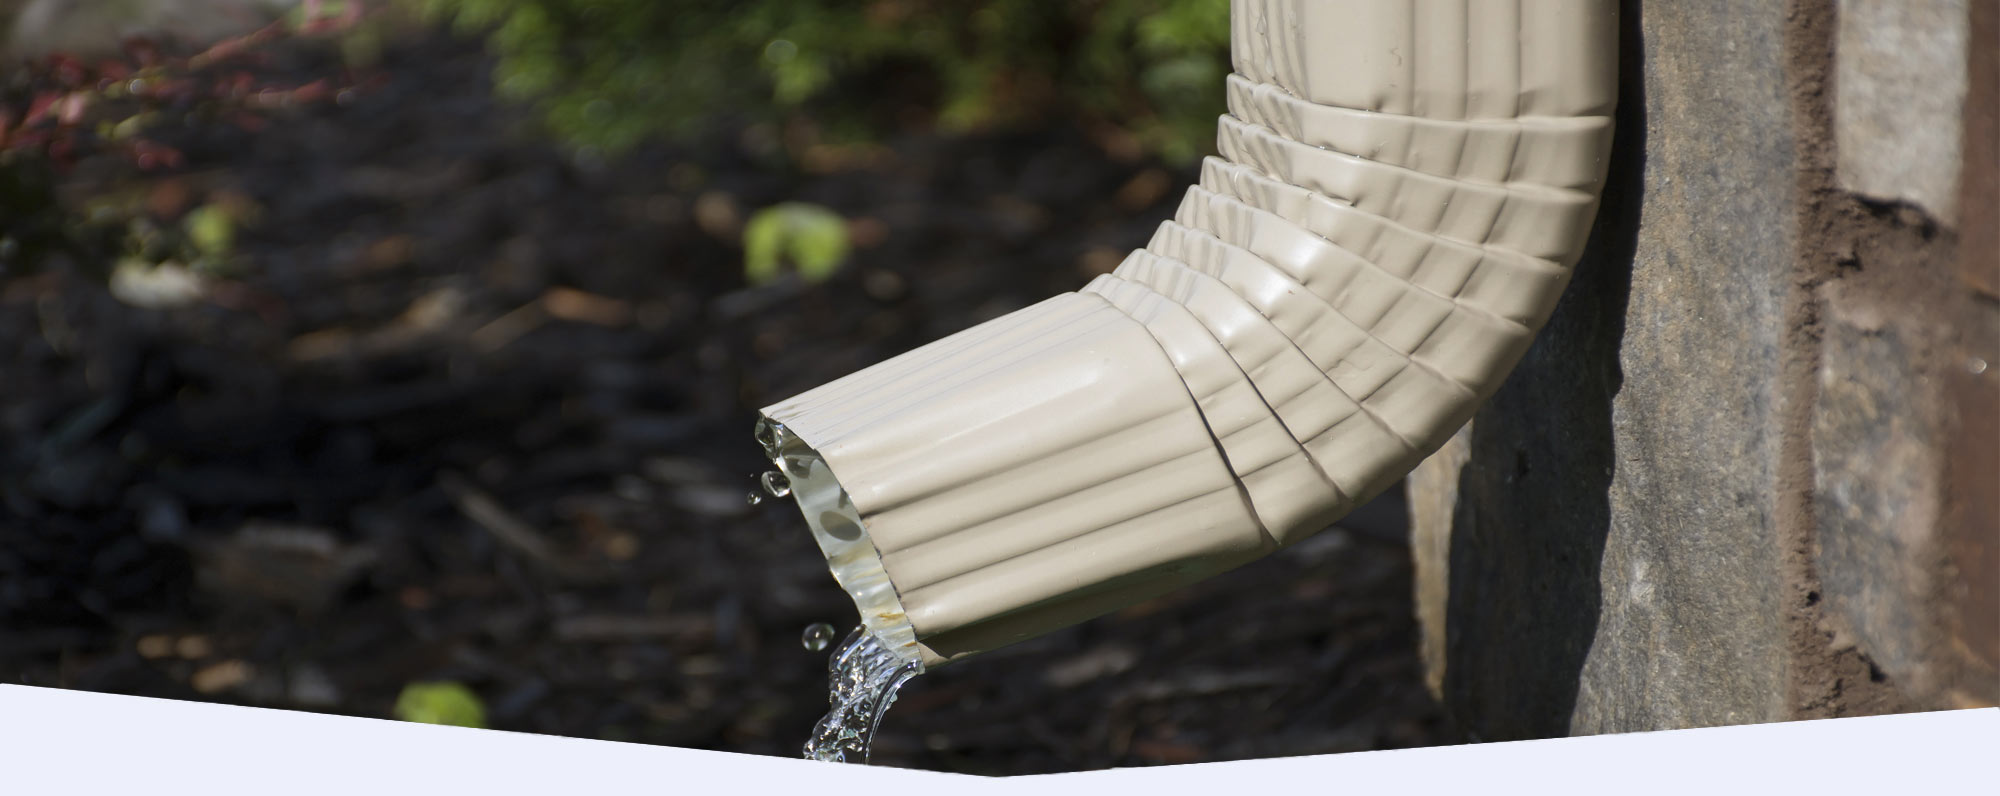 White downspout with rain water pouring out the bottom